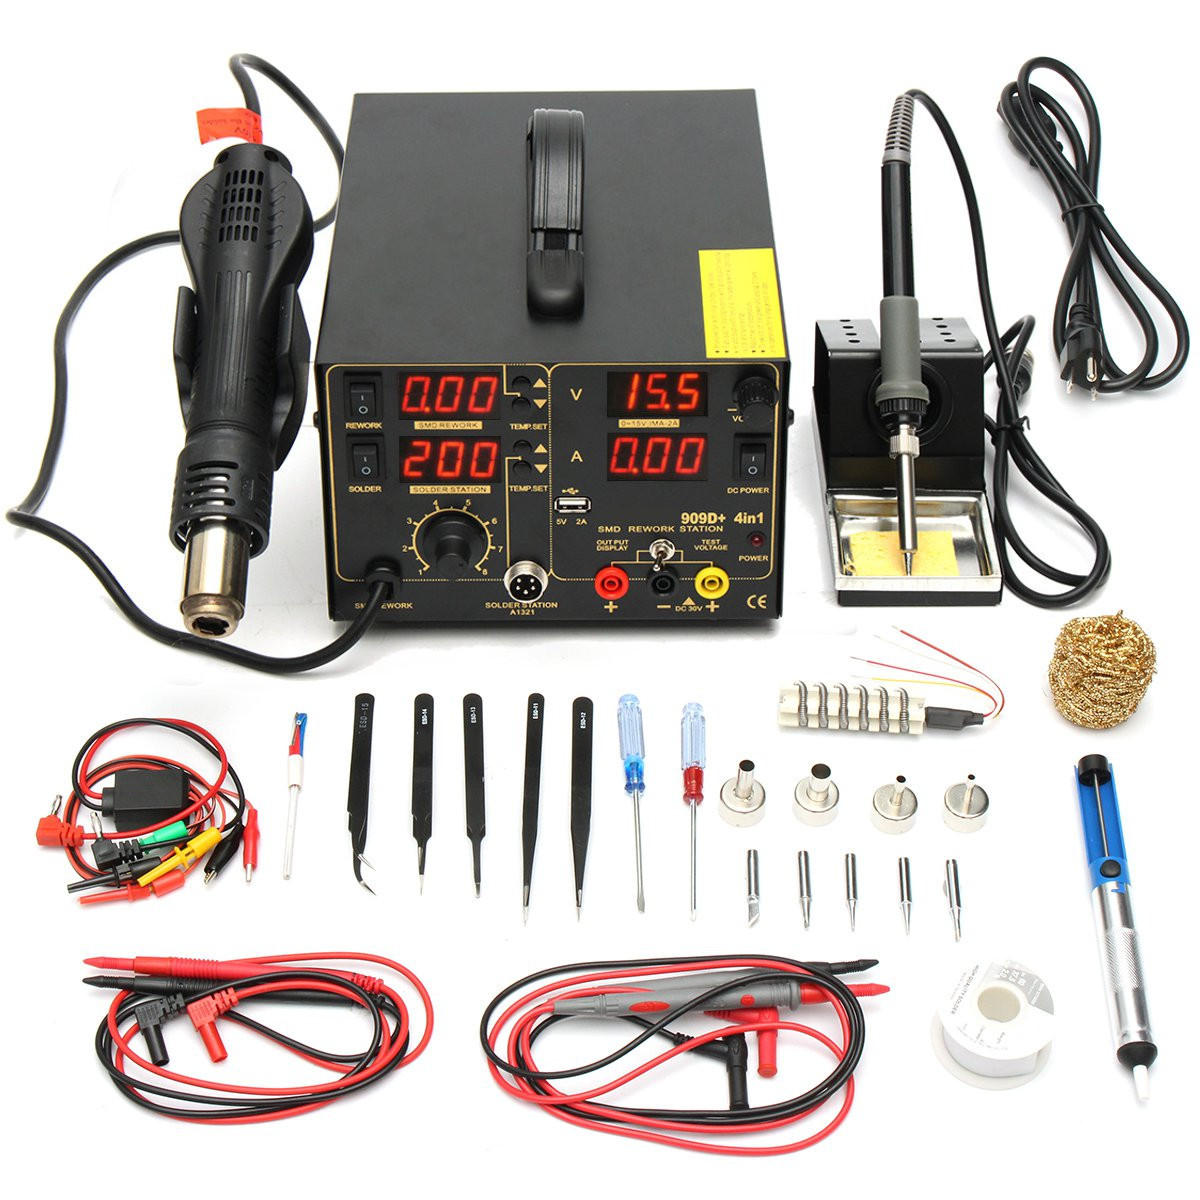 Heat Air 110v 800w 4 In 1 909d Rework Soldering Station Power Supply Hot Heat Air Gun Soldering Iron Kit